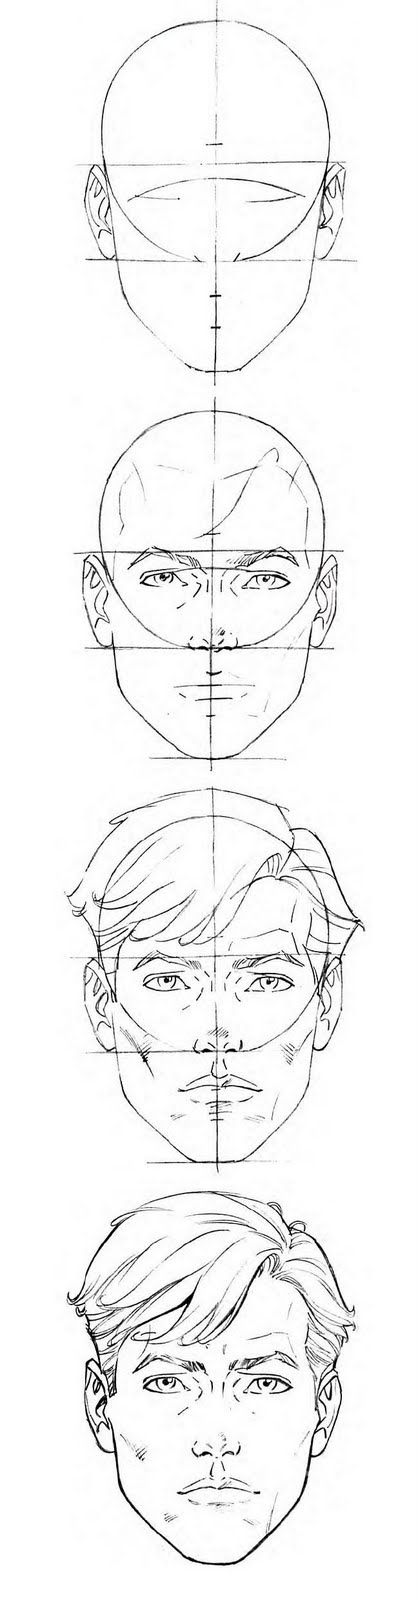 Example of how to draw a male face